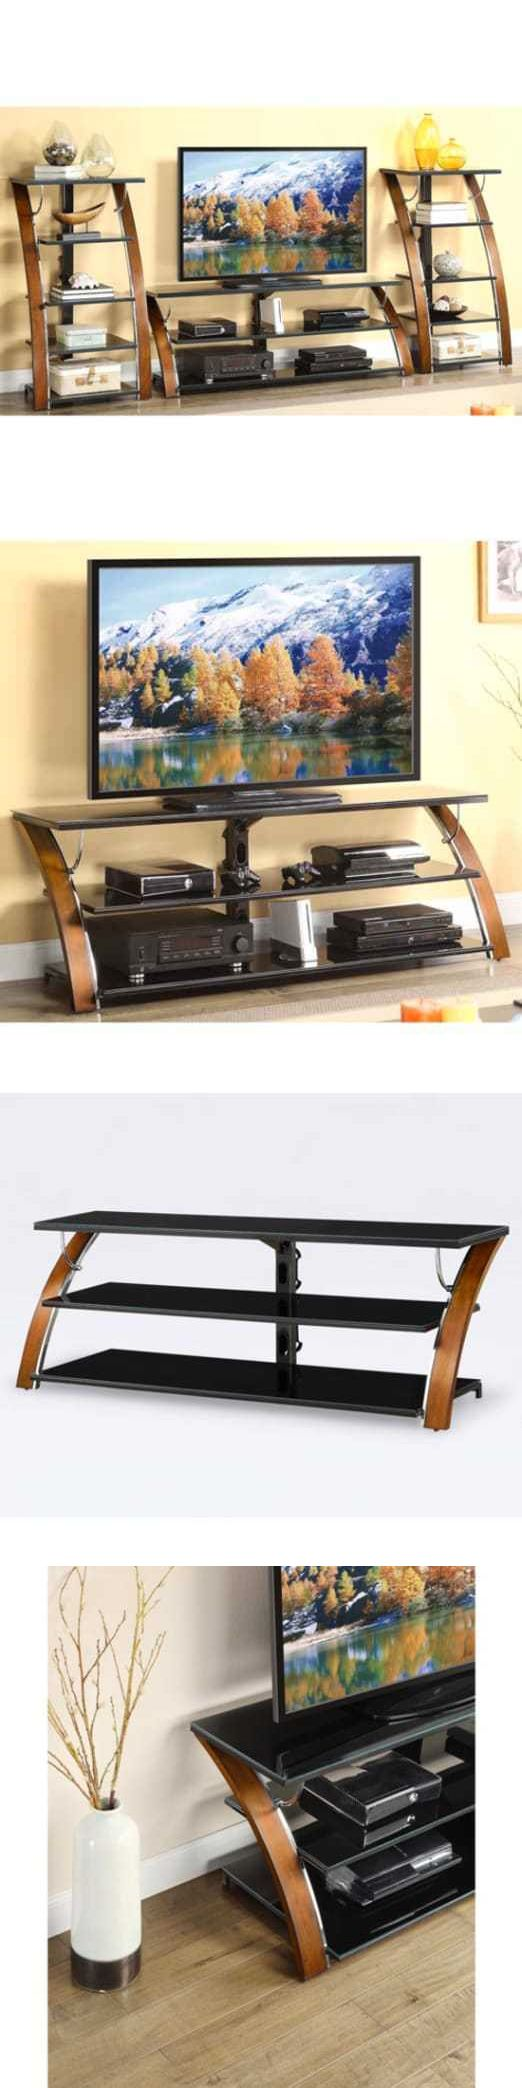 Entertainment Units TV Stands: Whalen Brown Cherry 3-Shelf Tabletop Console For Tvs Up To 70 -> BUY IT NOW ONLY: $132.78 on eBay!